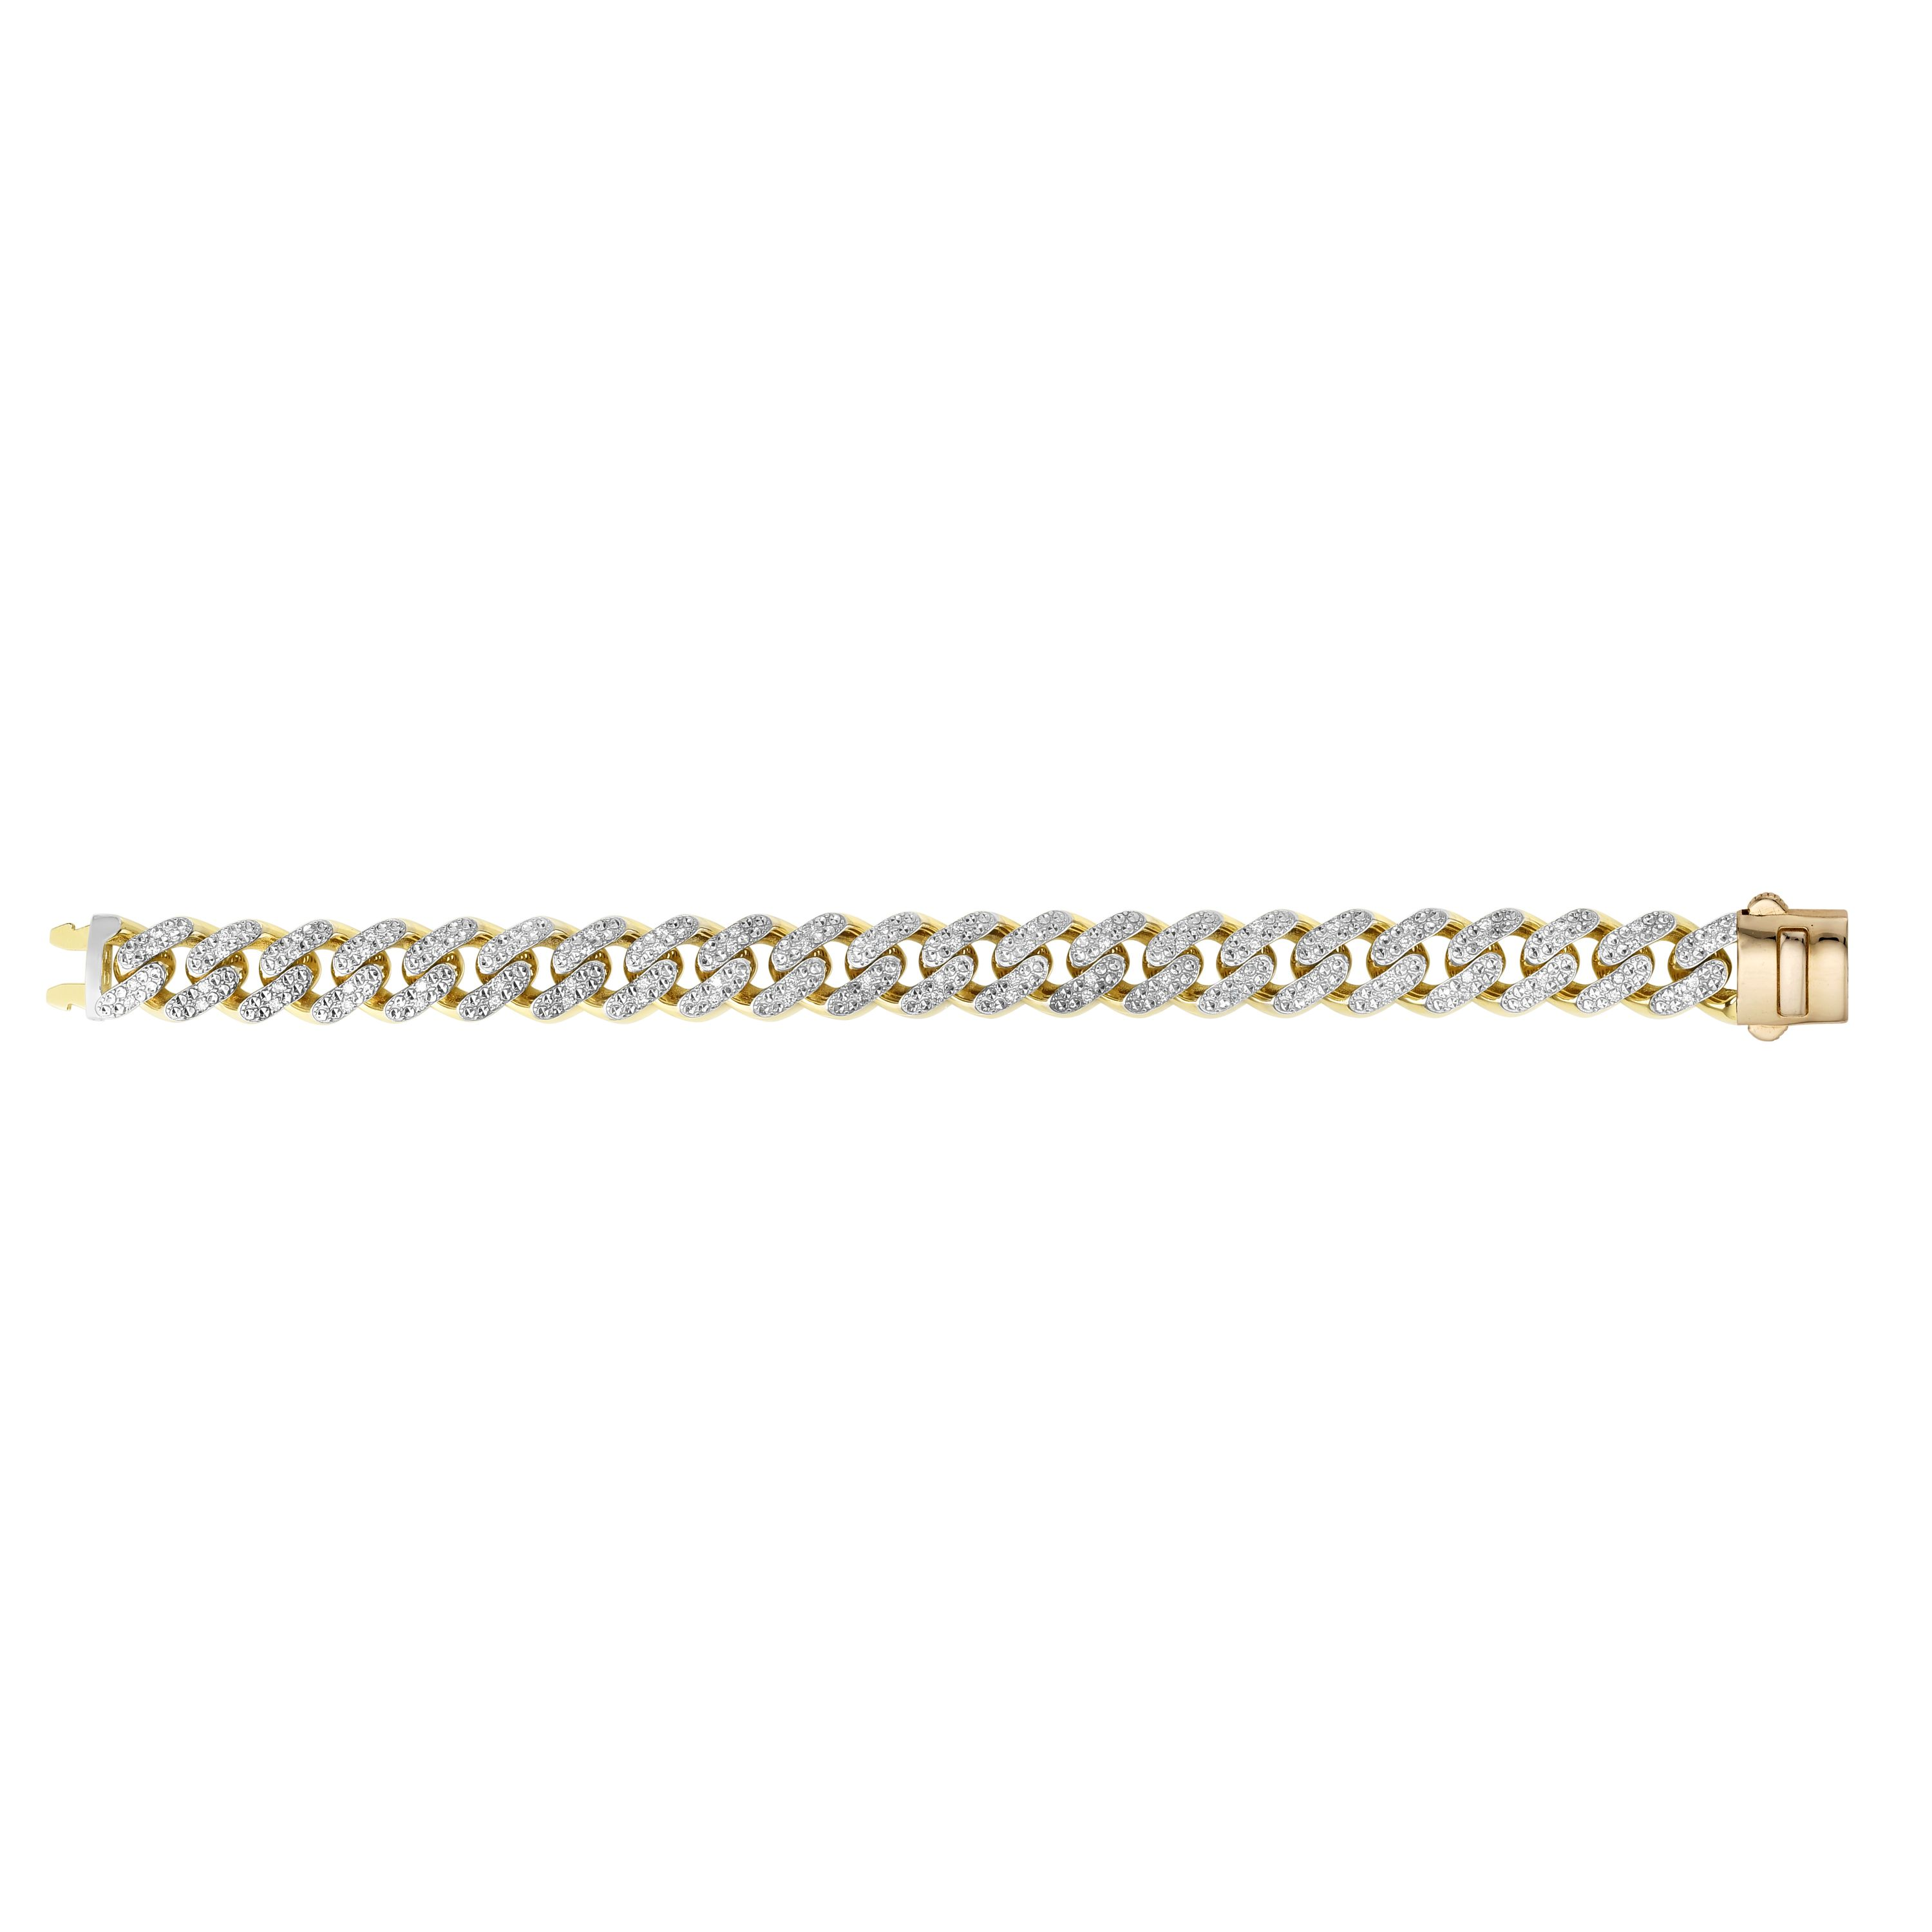 14kt Gold 8.5 inches Yellow Finish 13.5mm White Pave Curb Link Bracelet with Box Clasp + 1.4100ct 1.6mm White Diamond